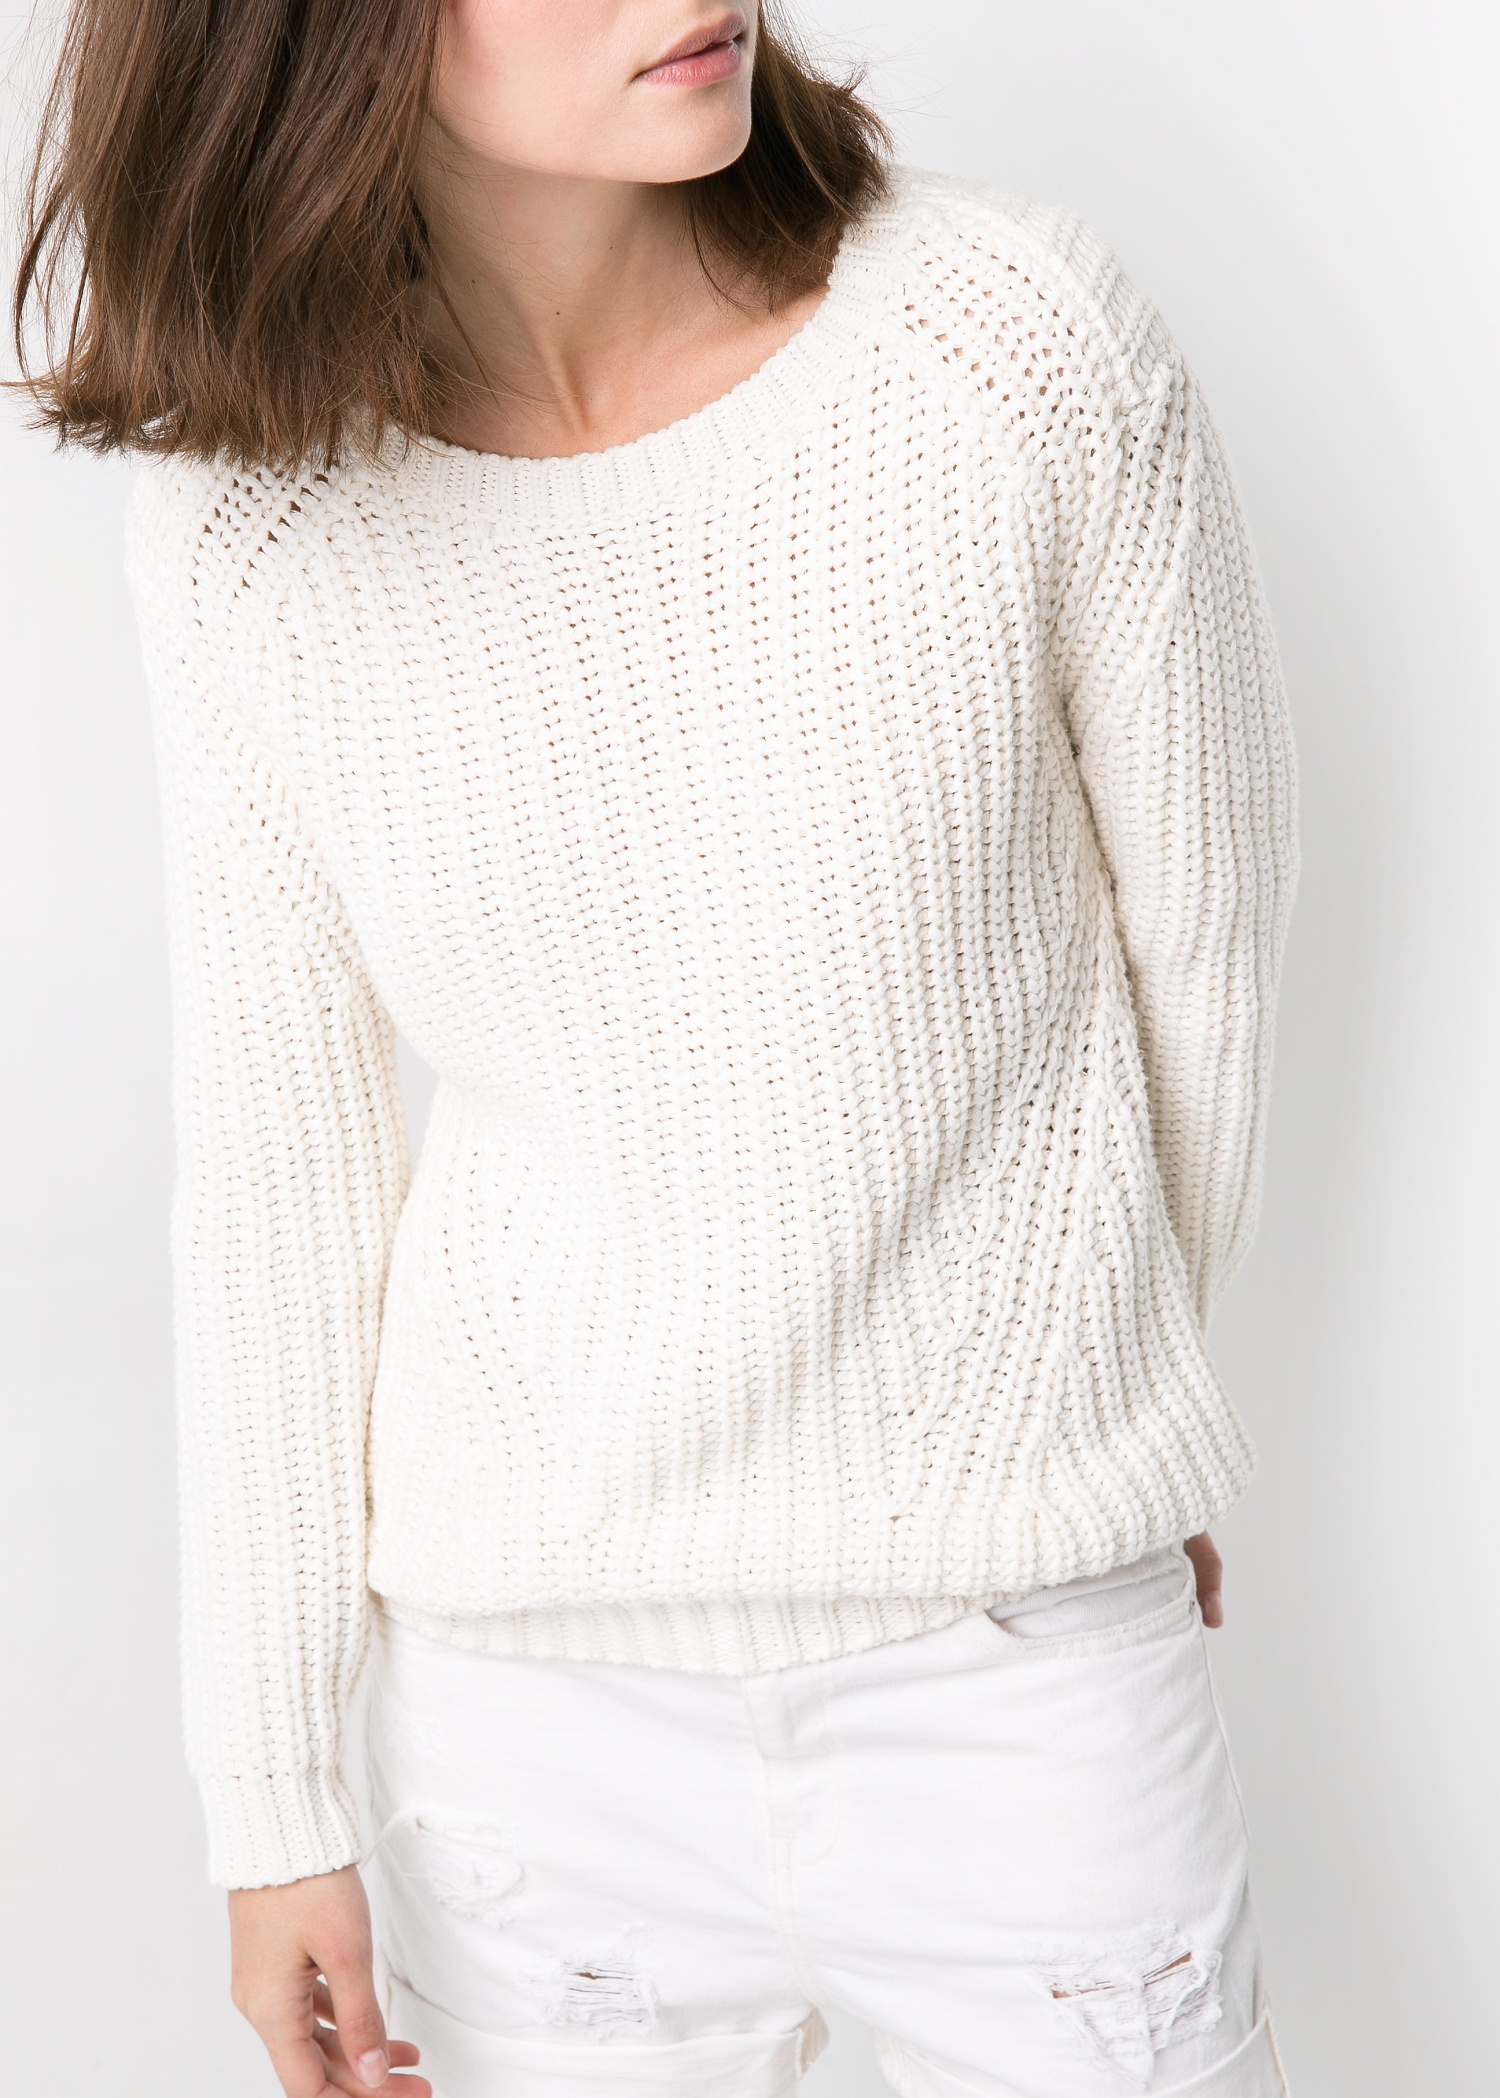 Mango Chunky-knit Sweater in White | Lyst